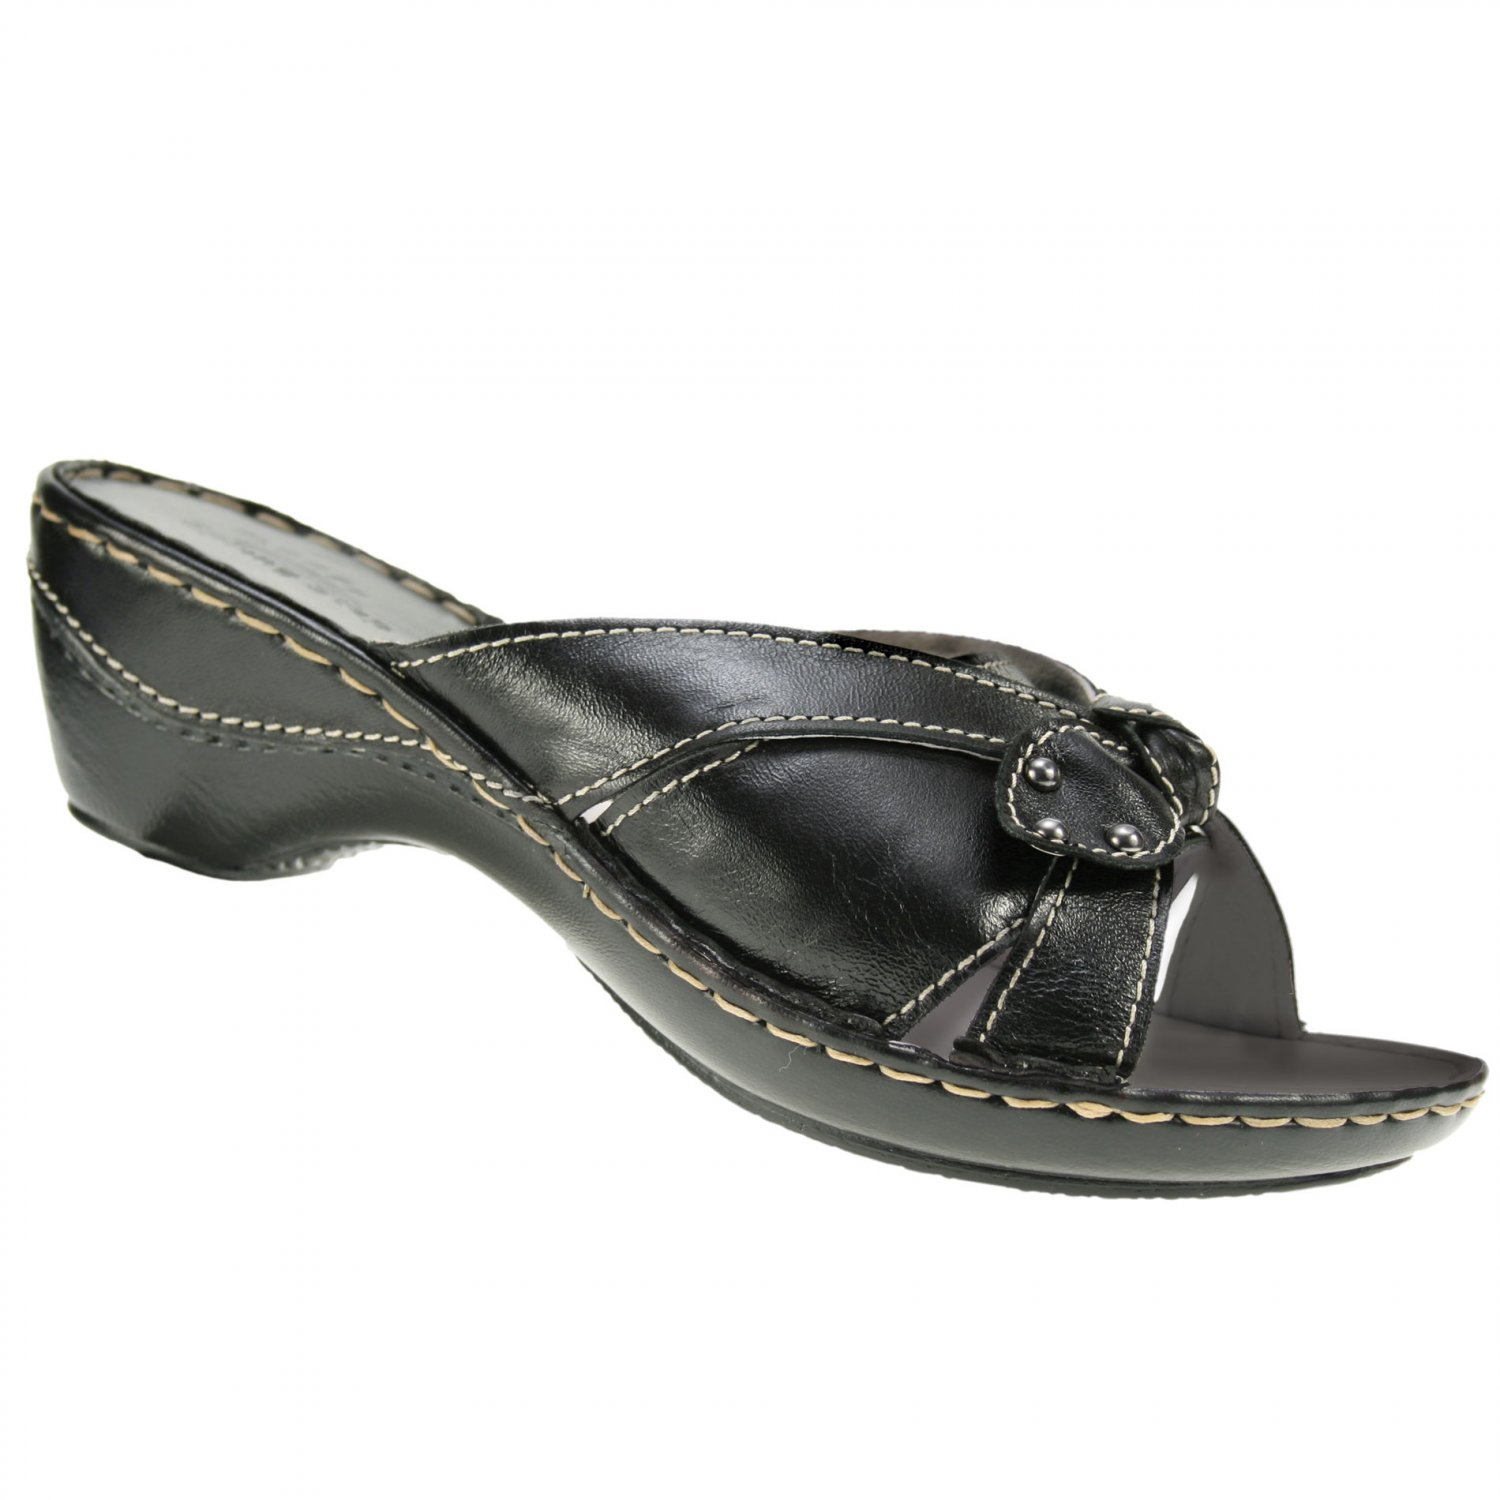 Spring Step MARSI Sandals Shoes All Sizes & Colors $69